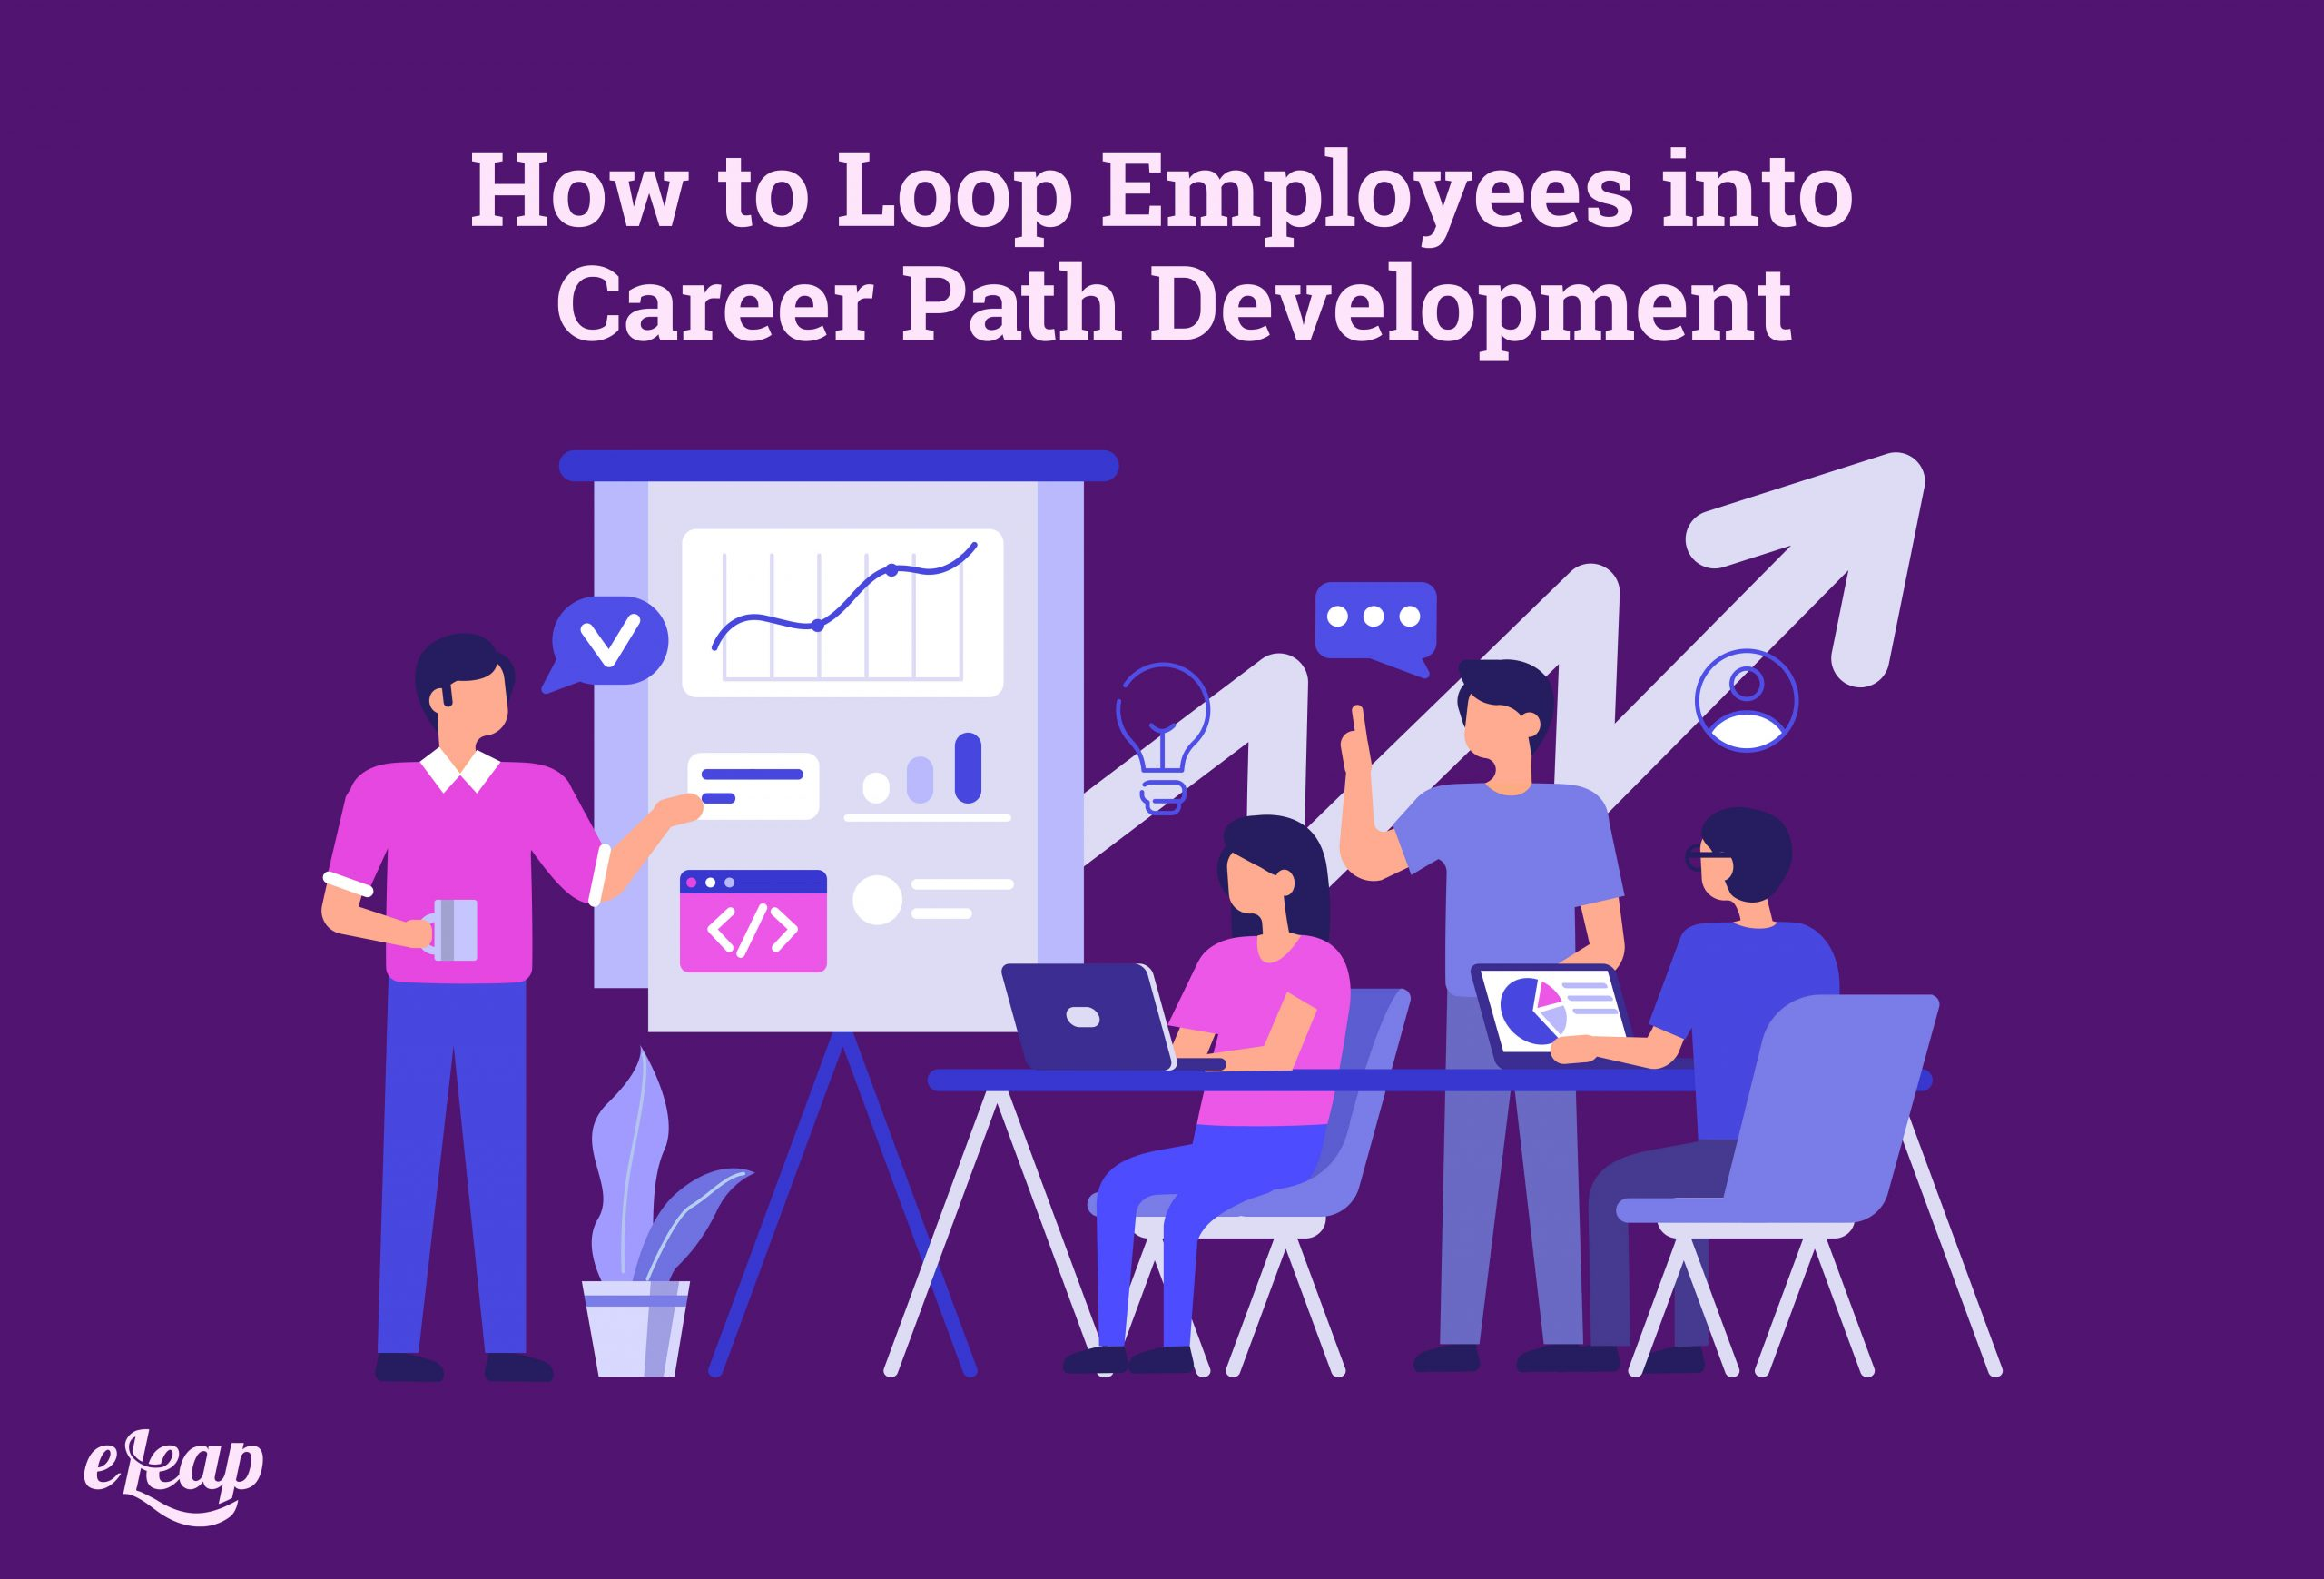 How to Loop Employees into Career Path Development